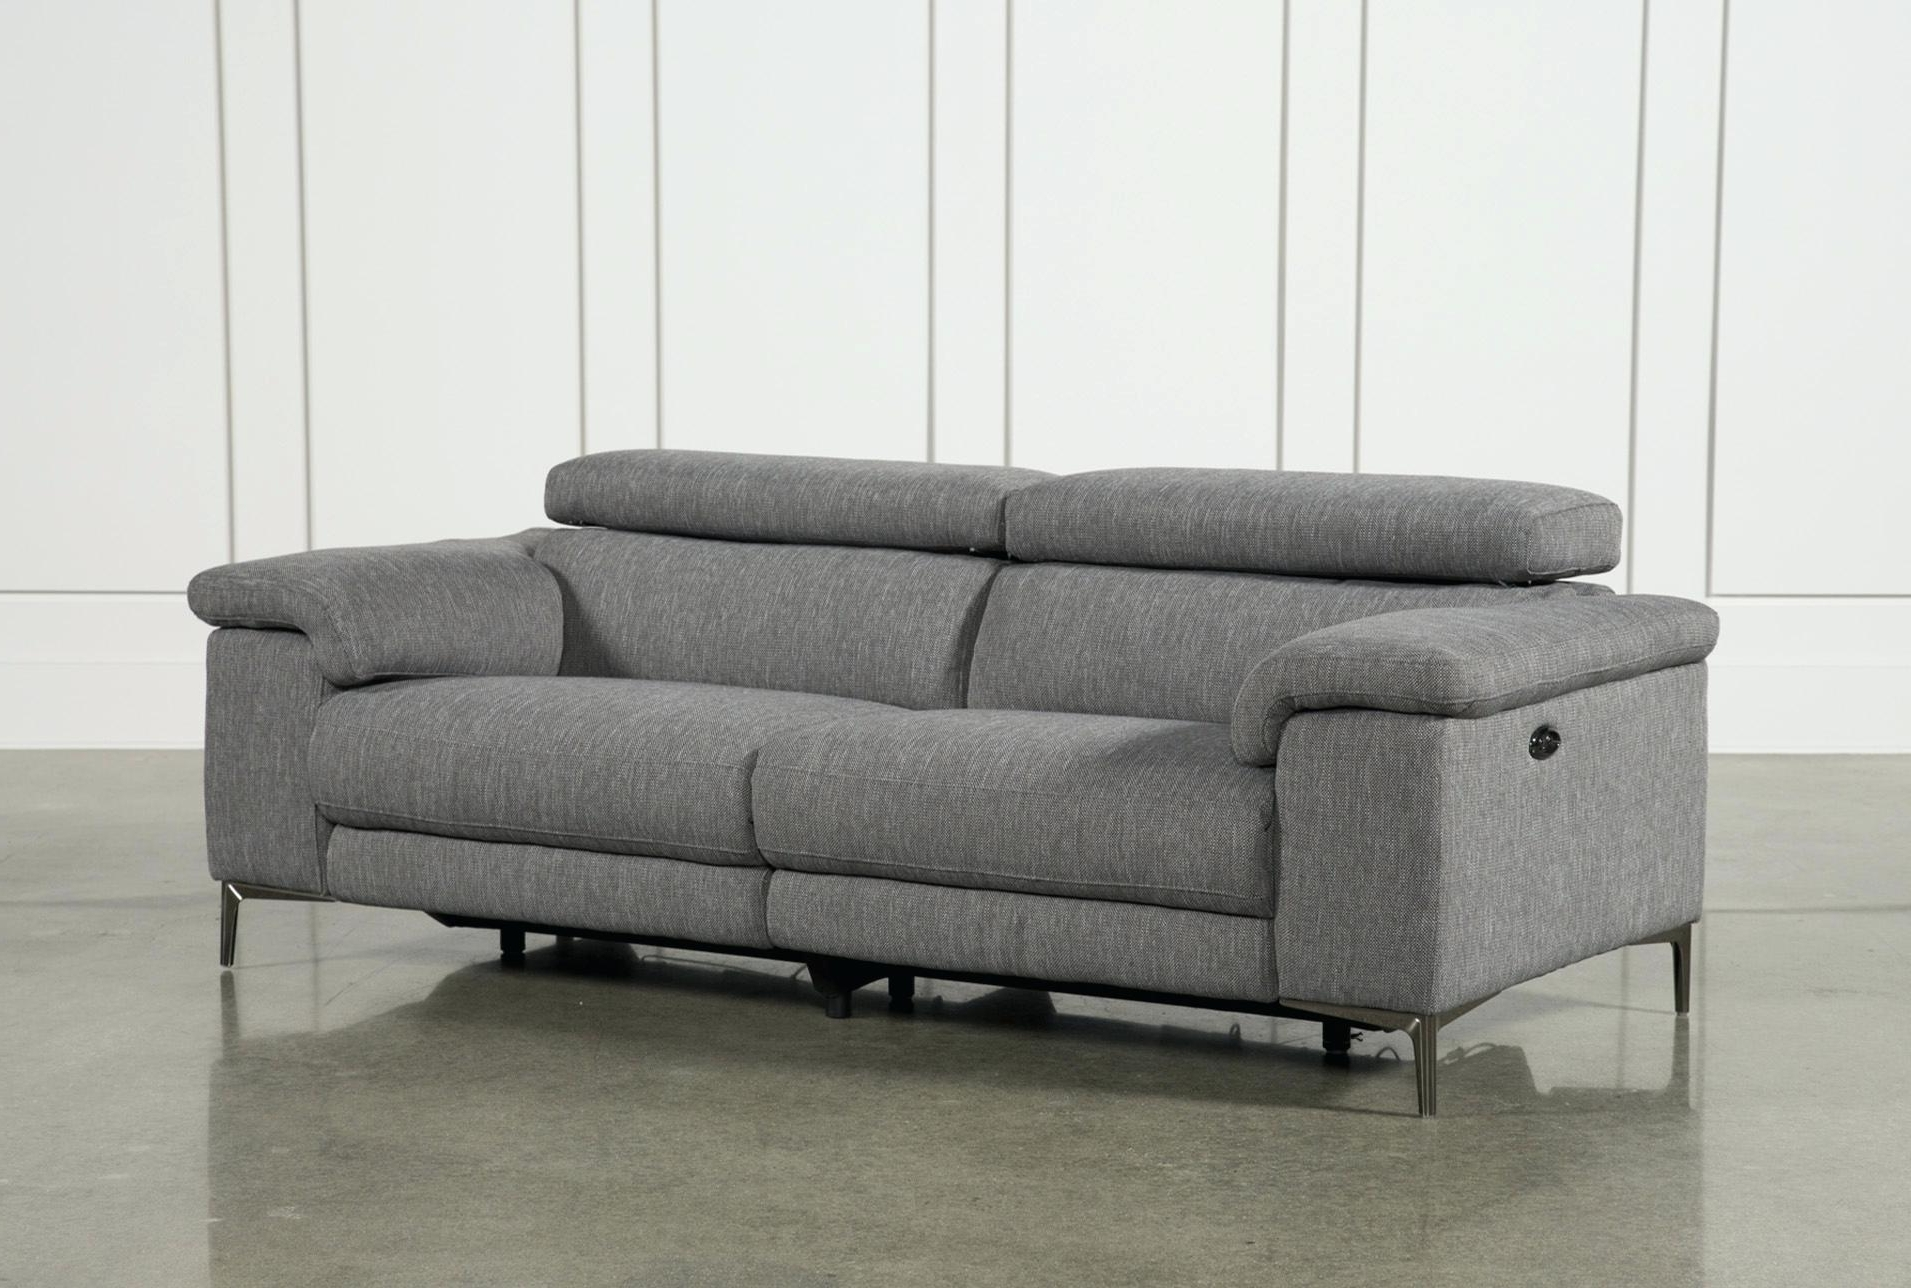 Recliner Sofas Intended For Most Recent Power Recliner Sofa Reclining Reviews 2015 Leather Sofas Uk With (View 12 of 17)